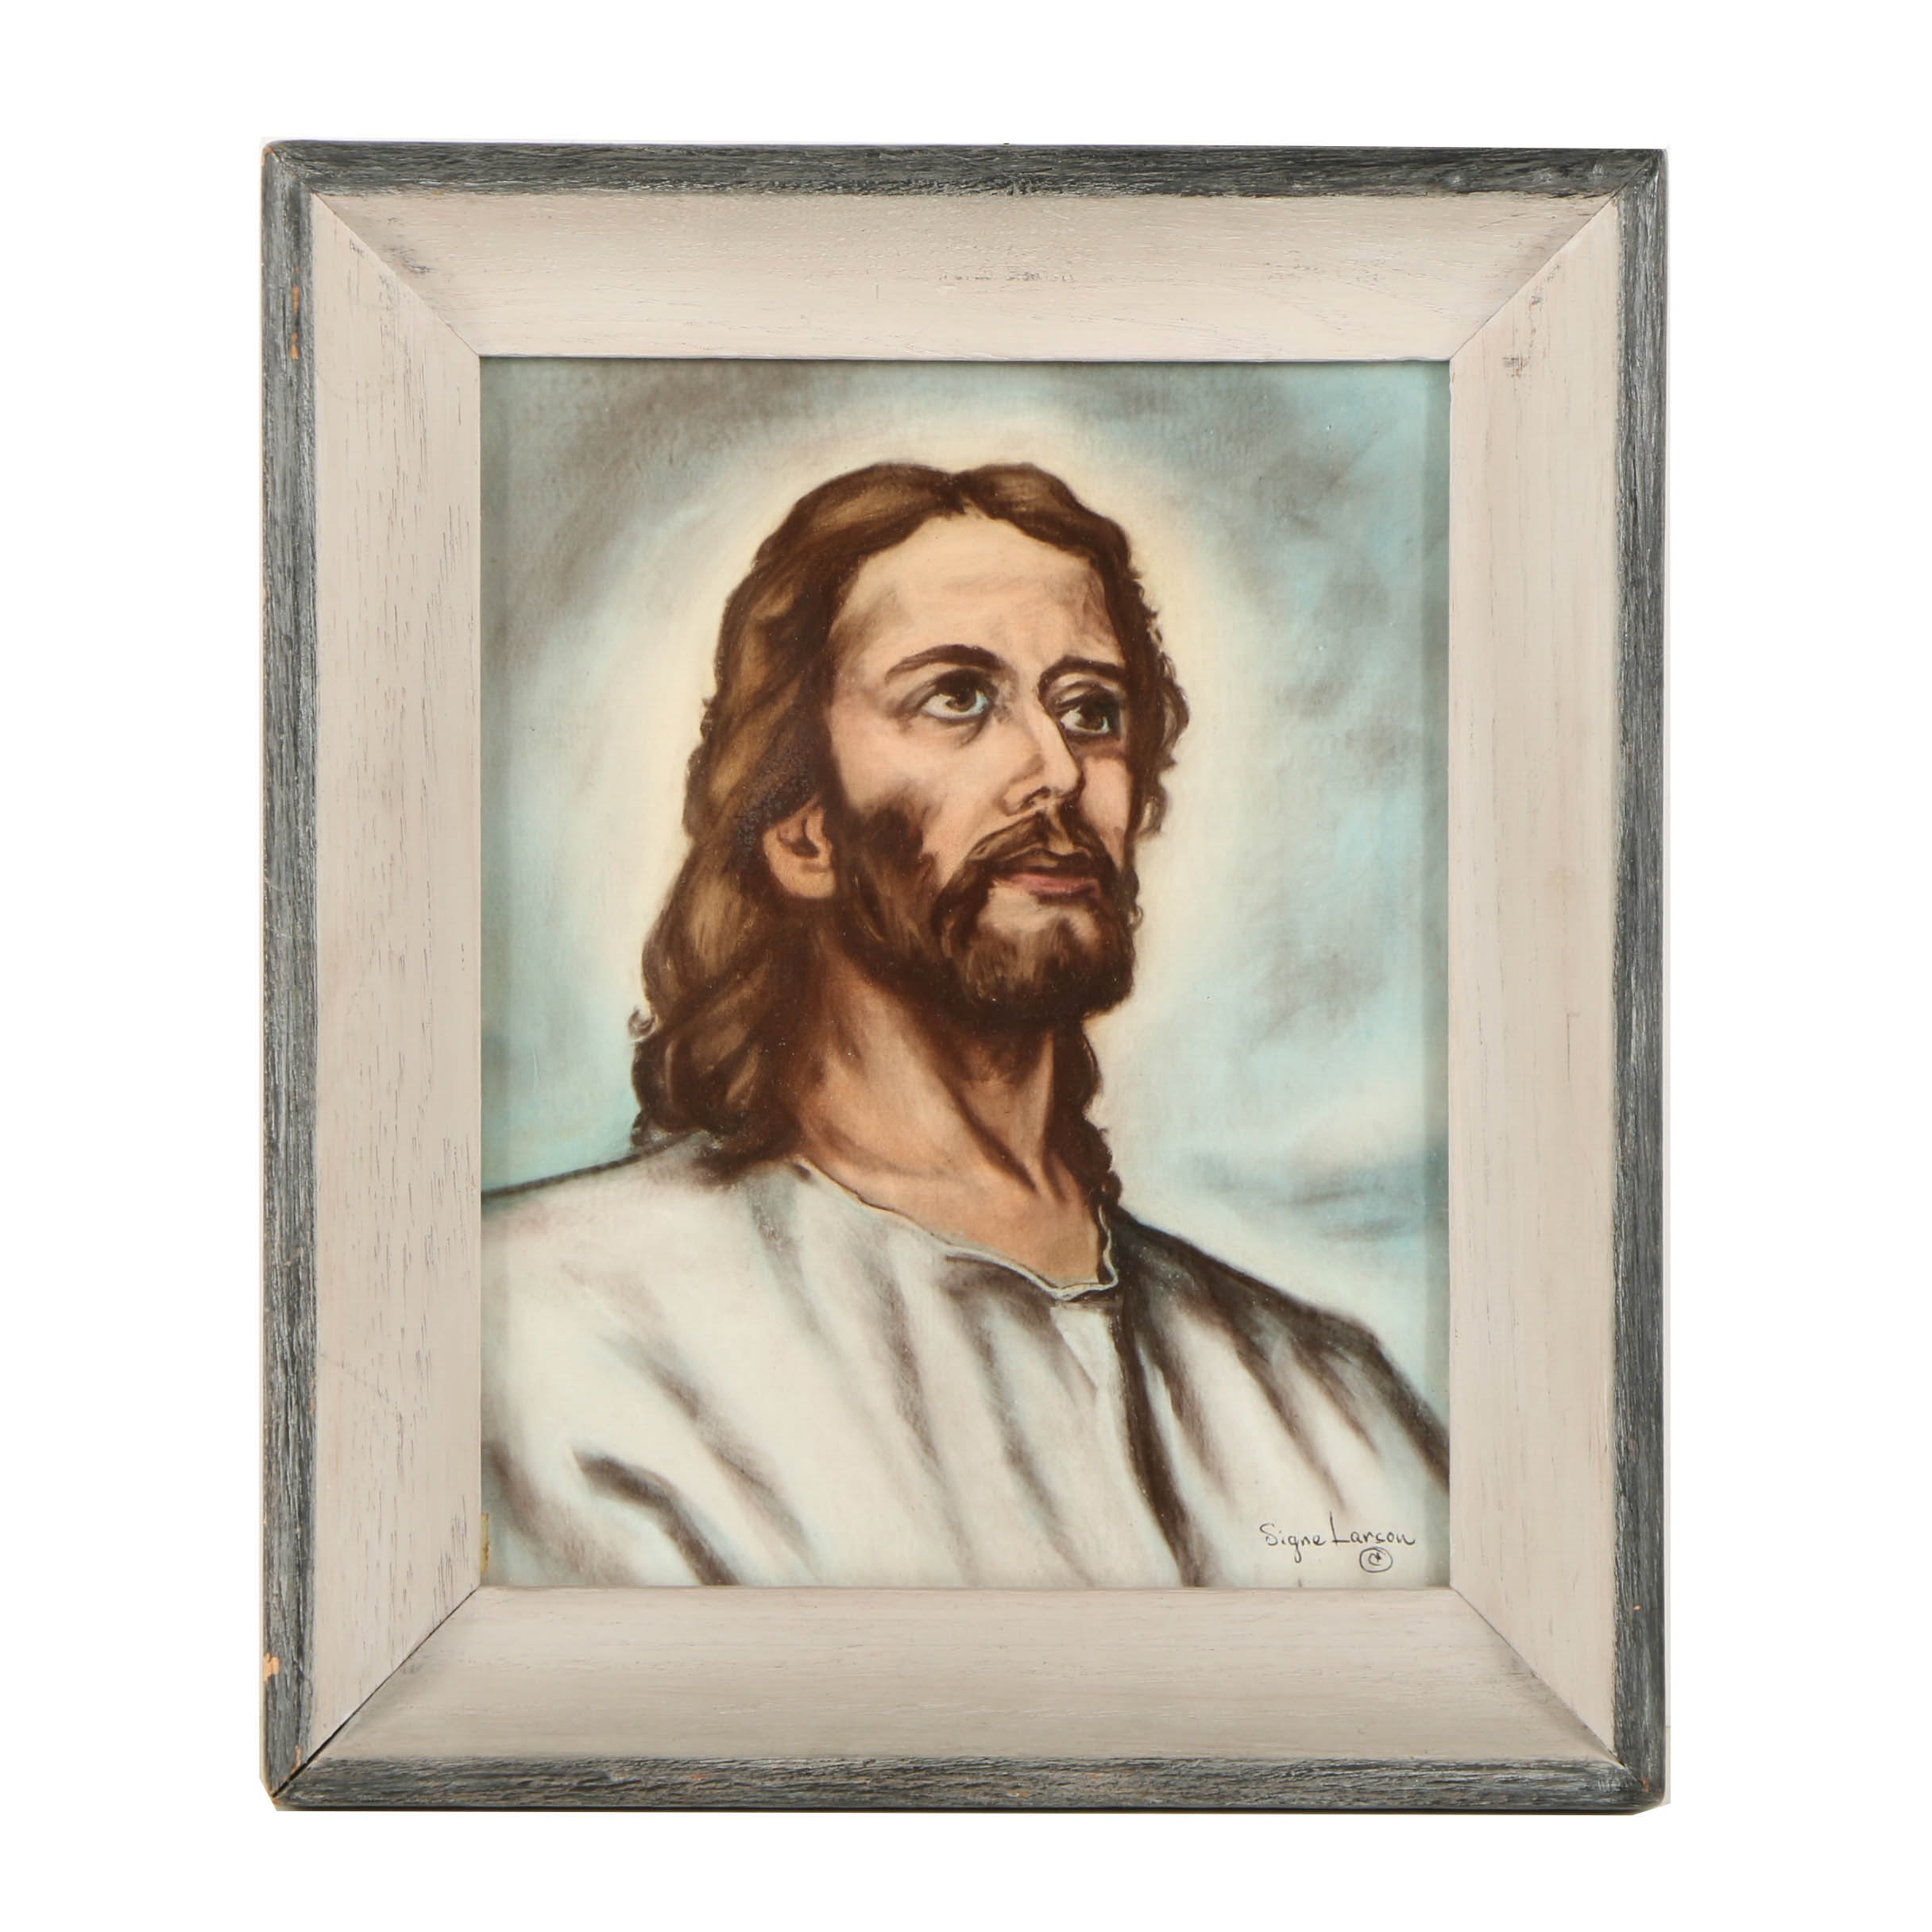 Signe Larson Reproduction Print on Paper of Christ